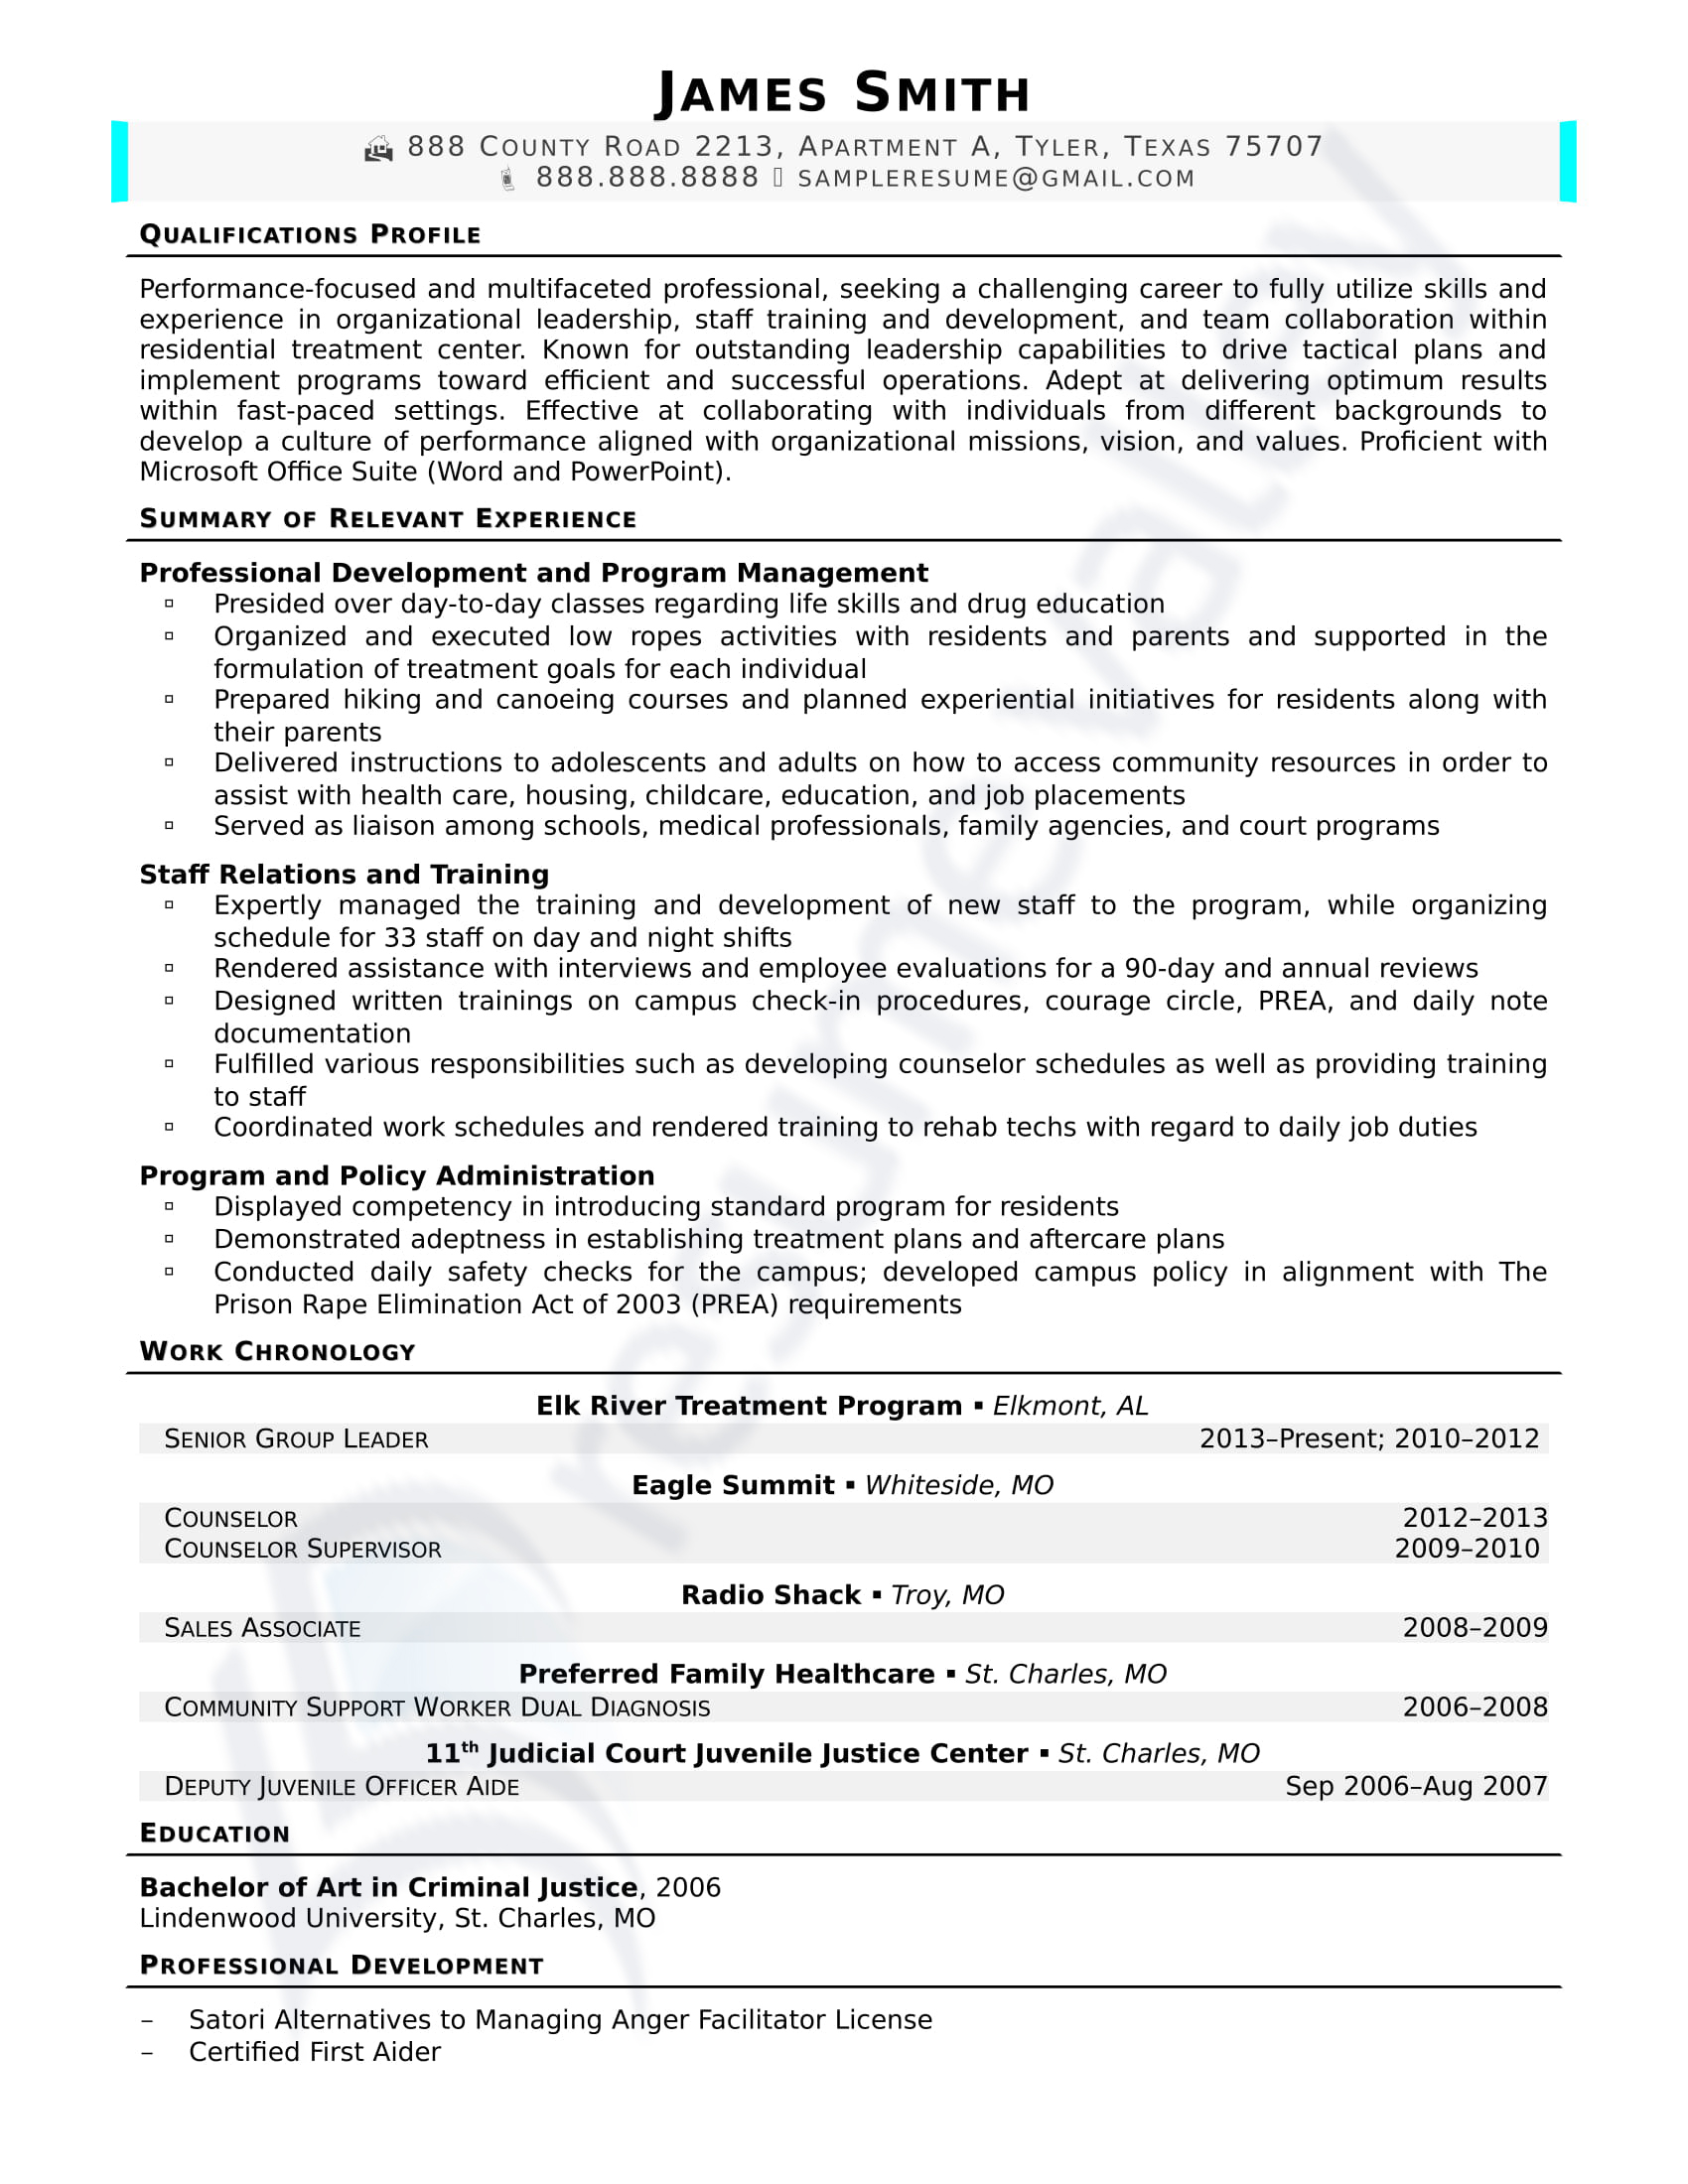 Senior Group Leader_Civilian Resume